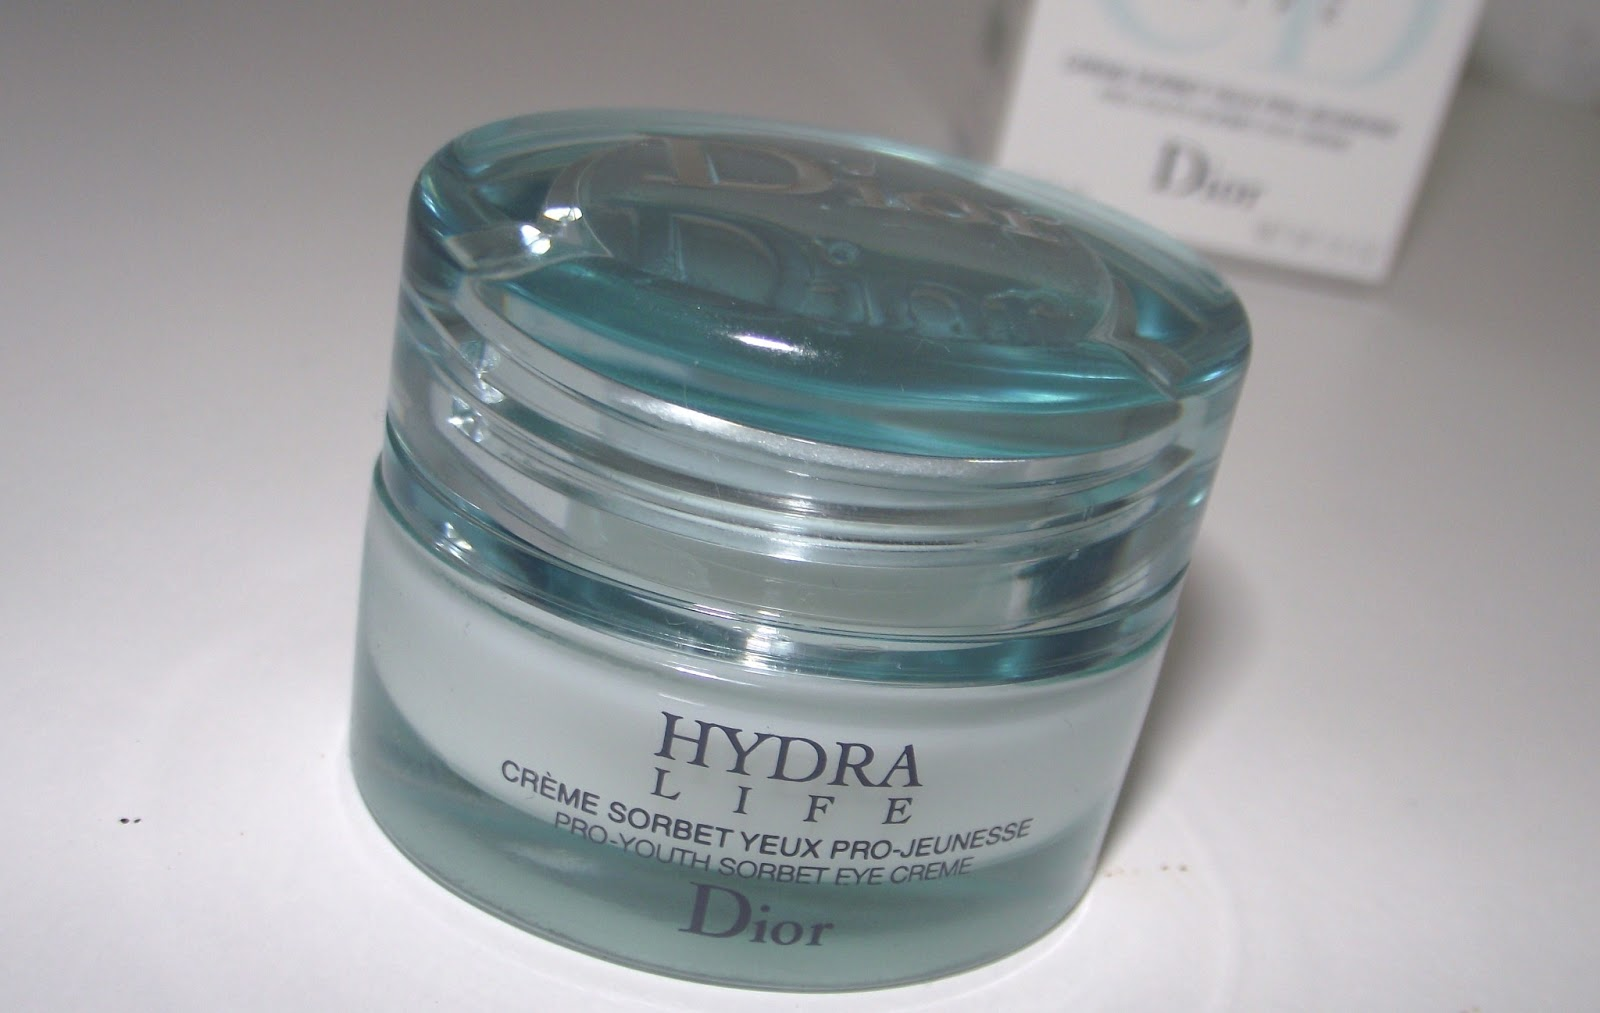 Hydra Life Pro-Youth Comfort Cream by Dior #11